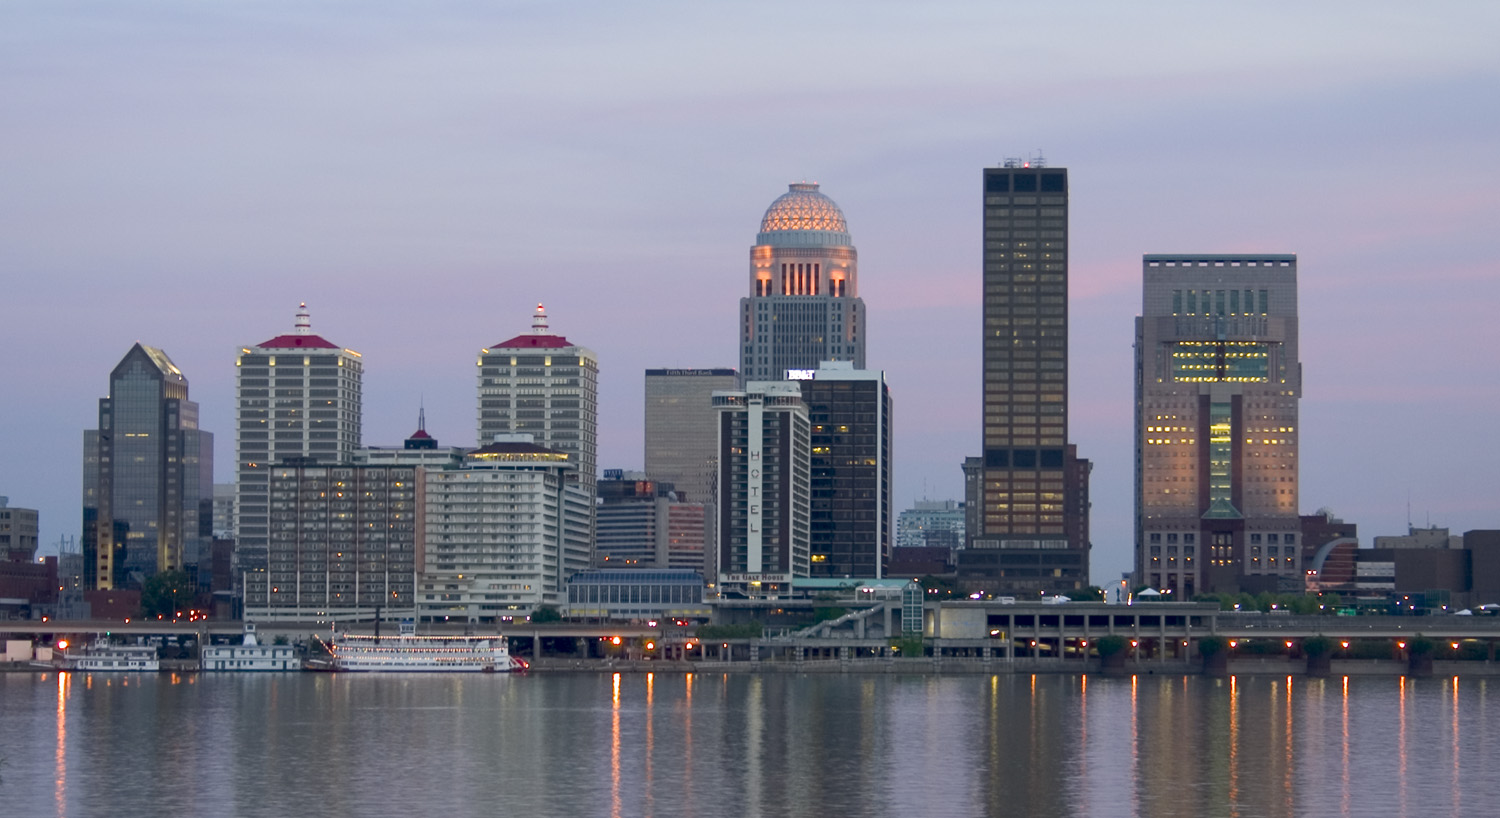 Skyline of Louisville Kentucky